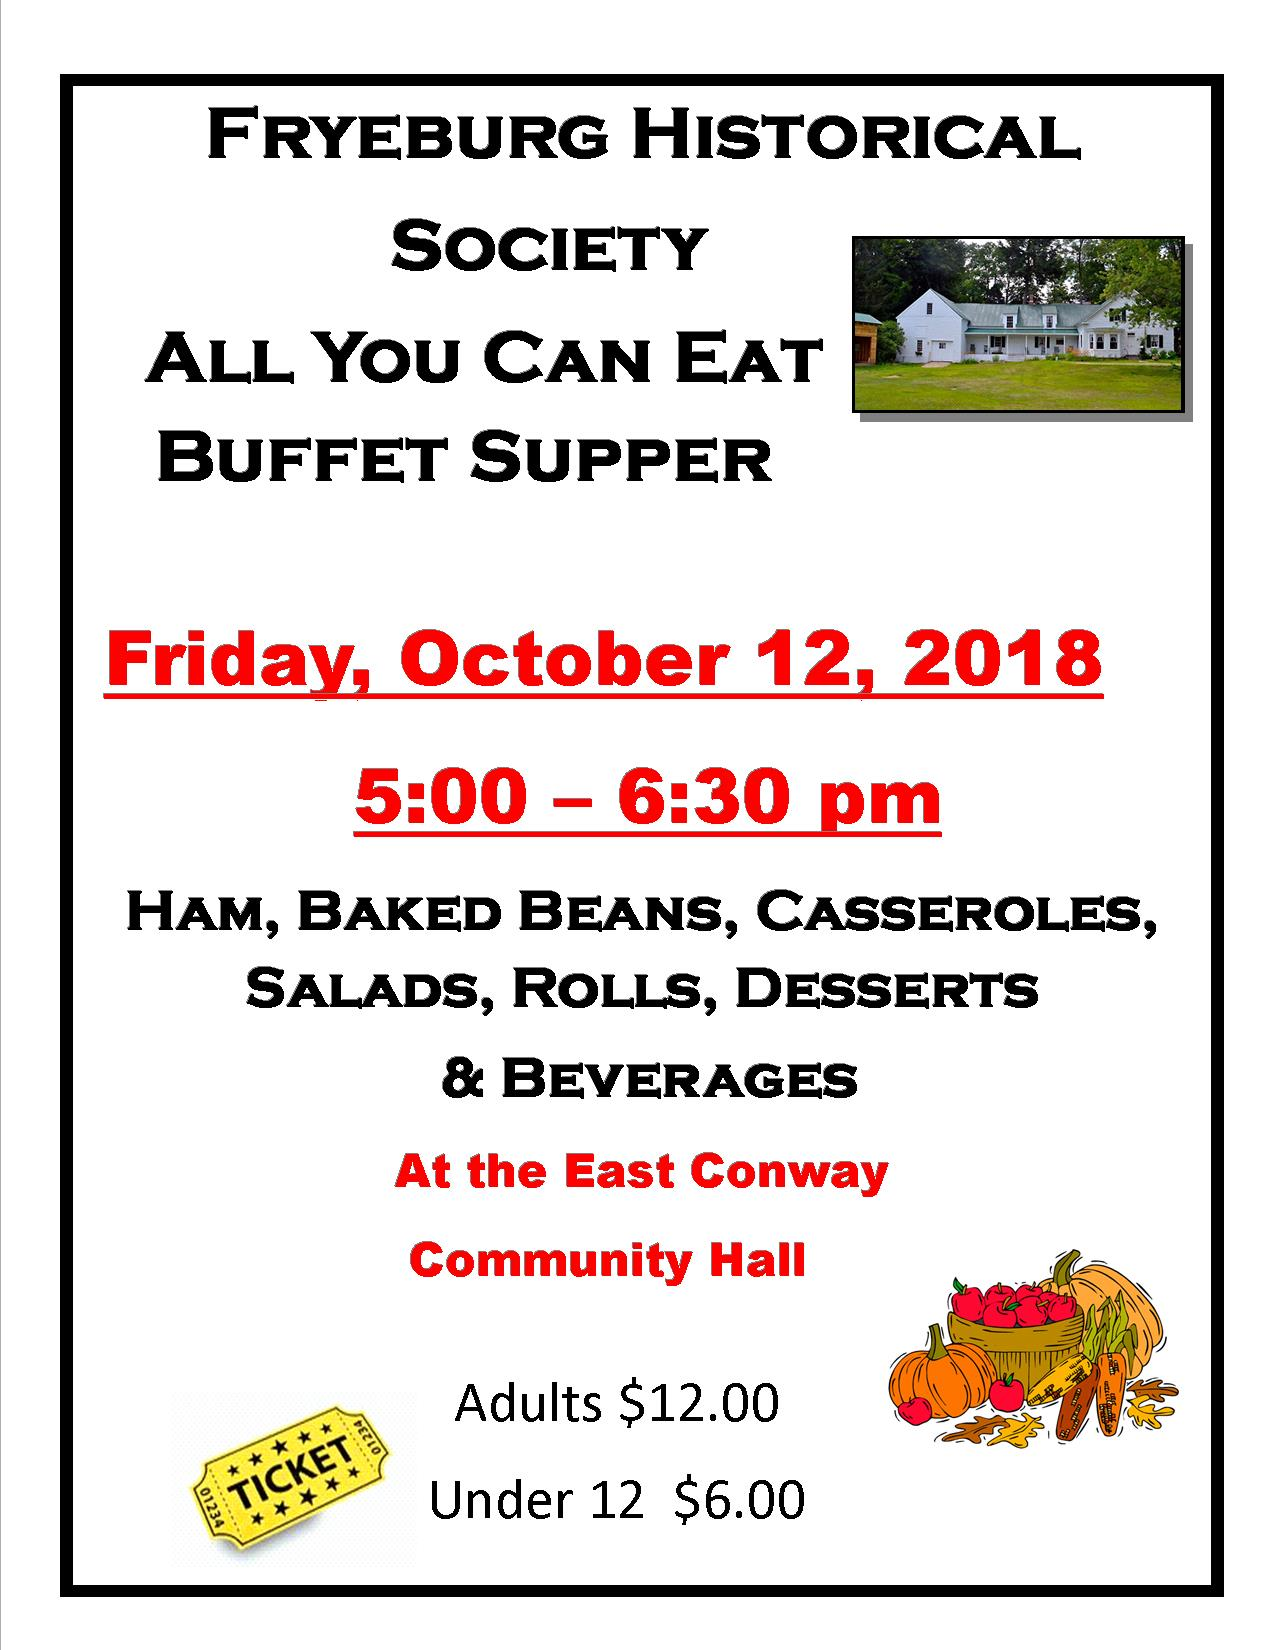 All You Can Eat Supper Buffet, 5:00-6:30 pm, East Conway Community Hall, Adults $12, under 12yo $6.